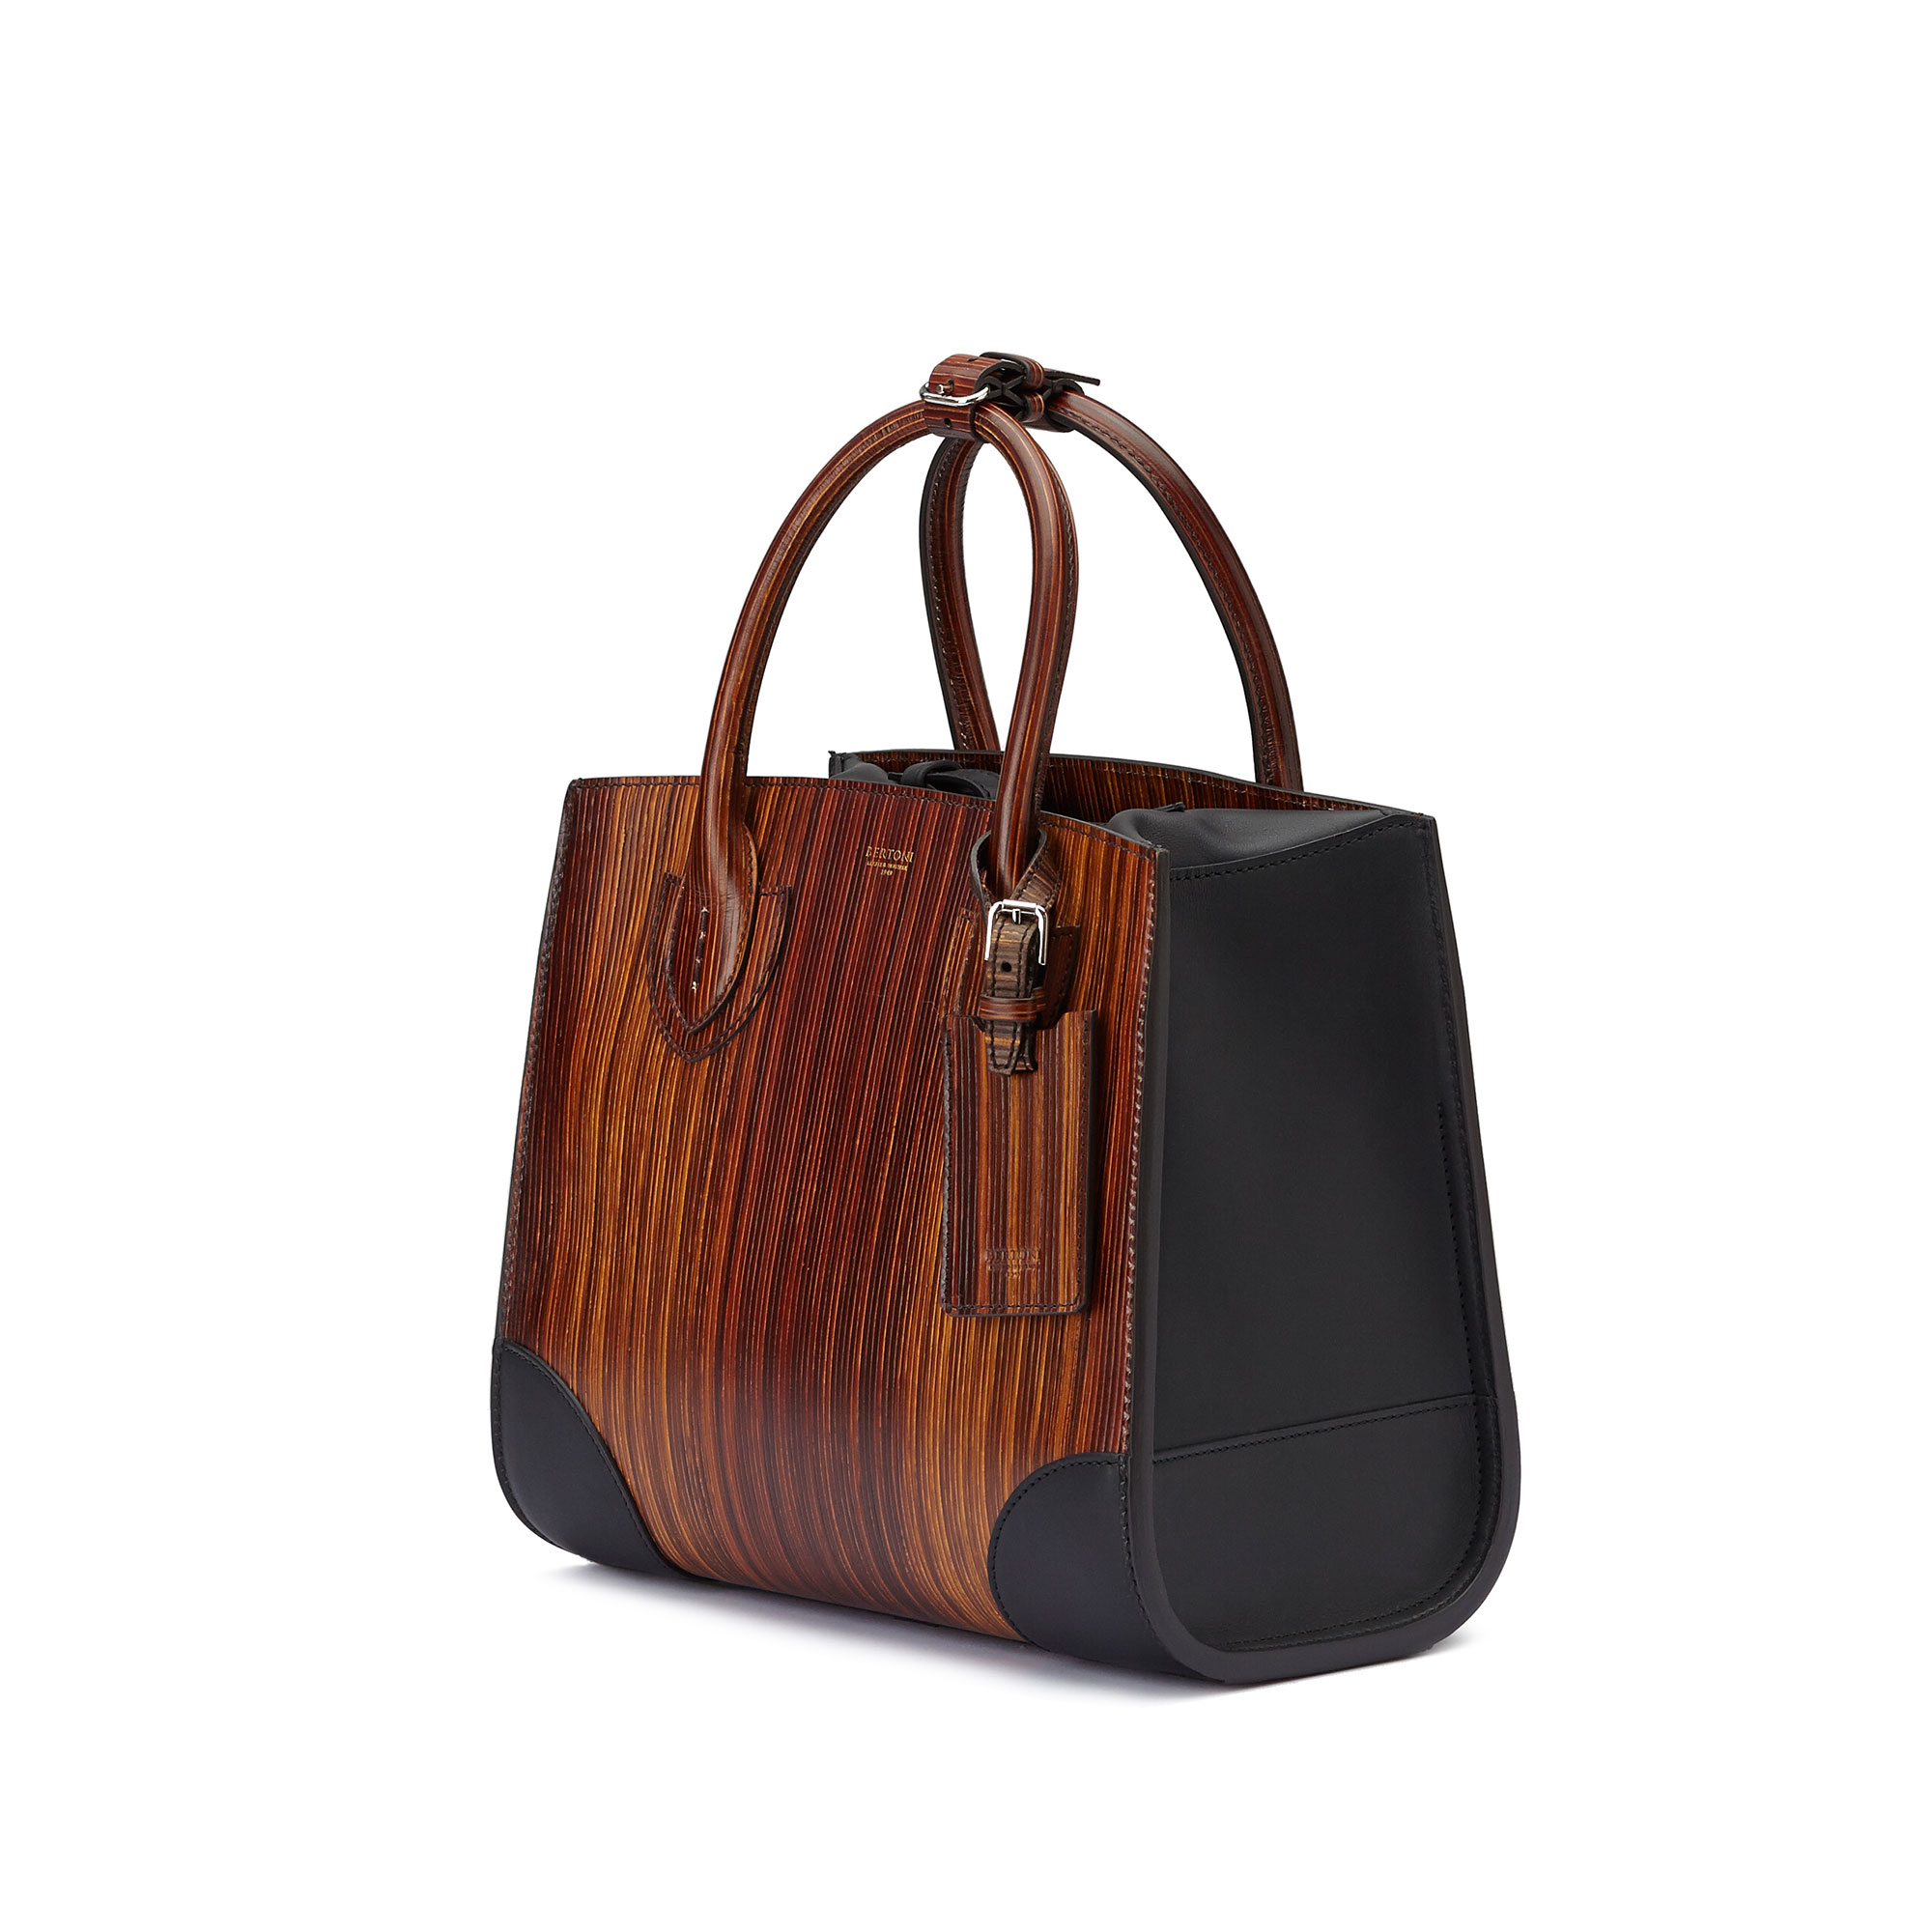 The wood effect french calf wood leather Darcy medium bag by Bertoni 1949 03